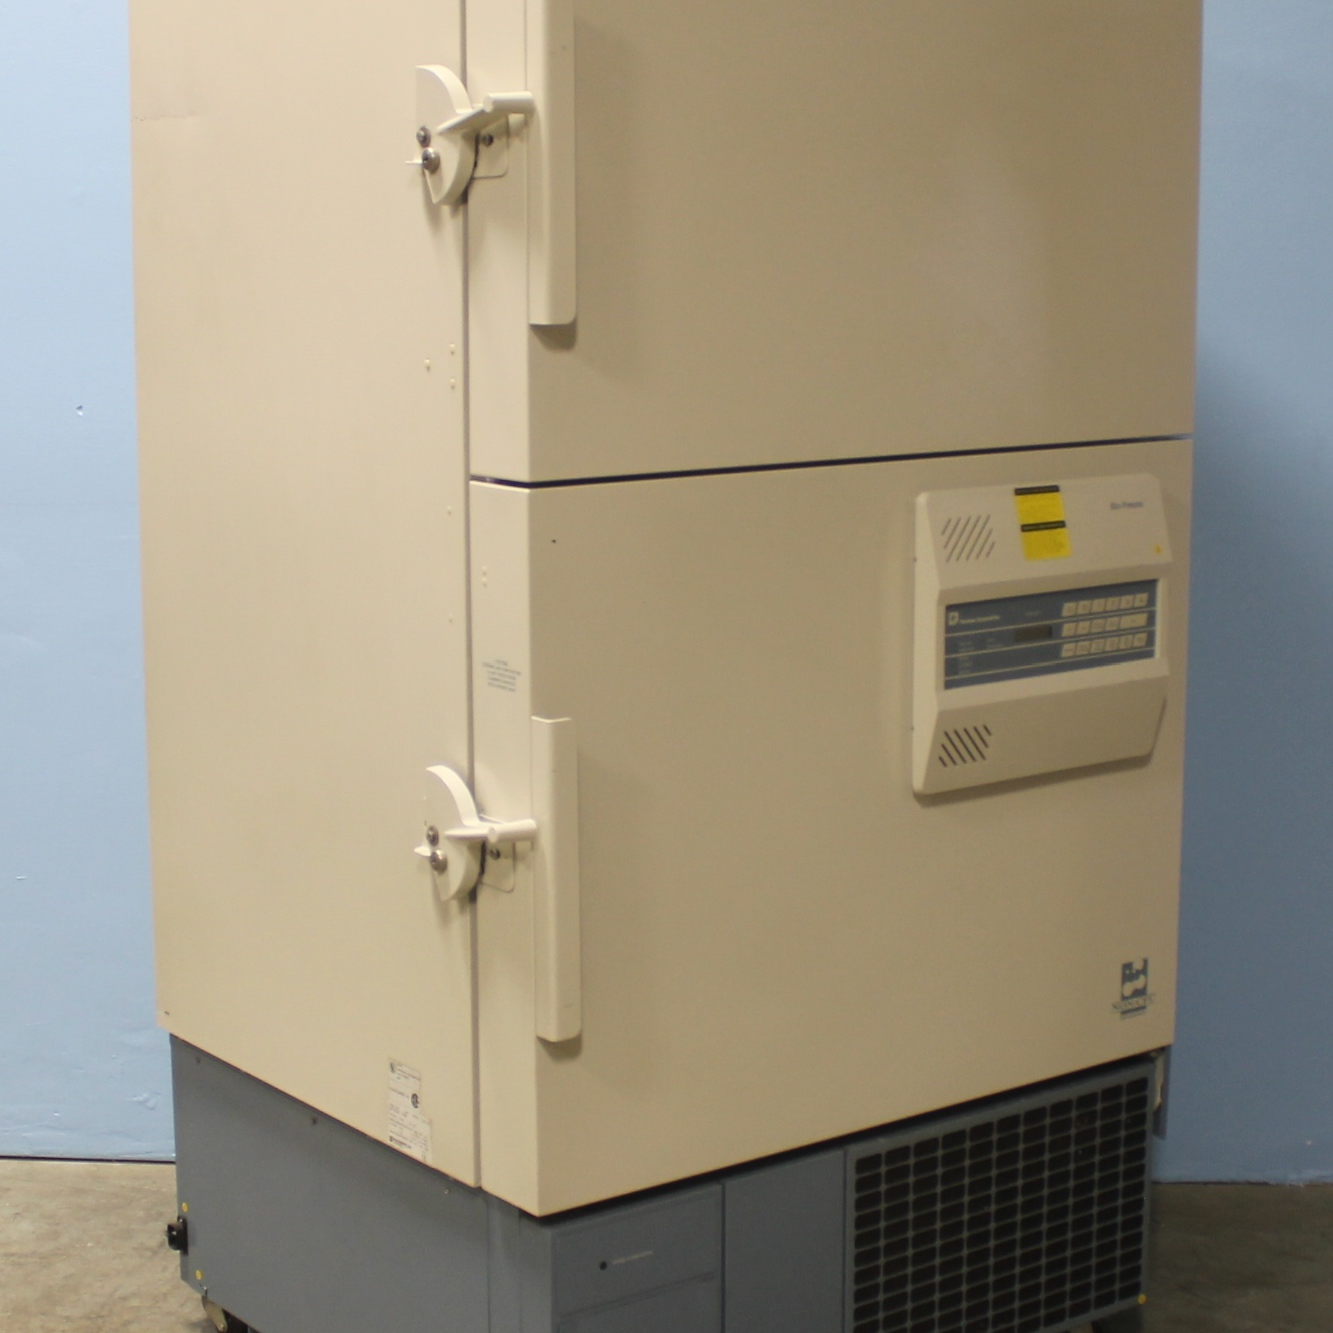 Thermo Forma Model 8523 -86C Ultra-Low Temperature Freezer Image